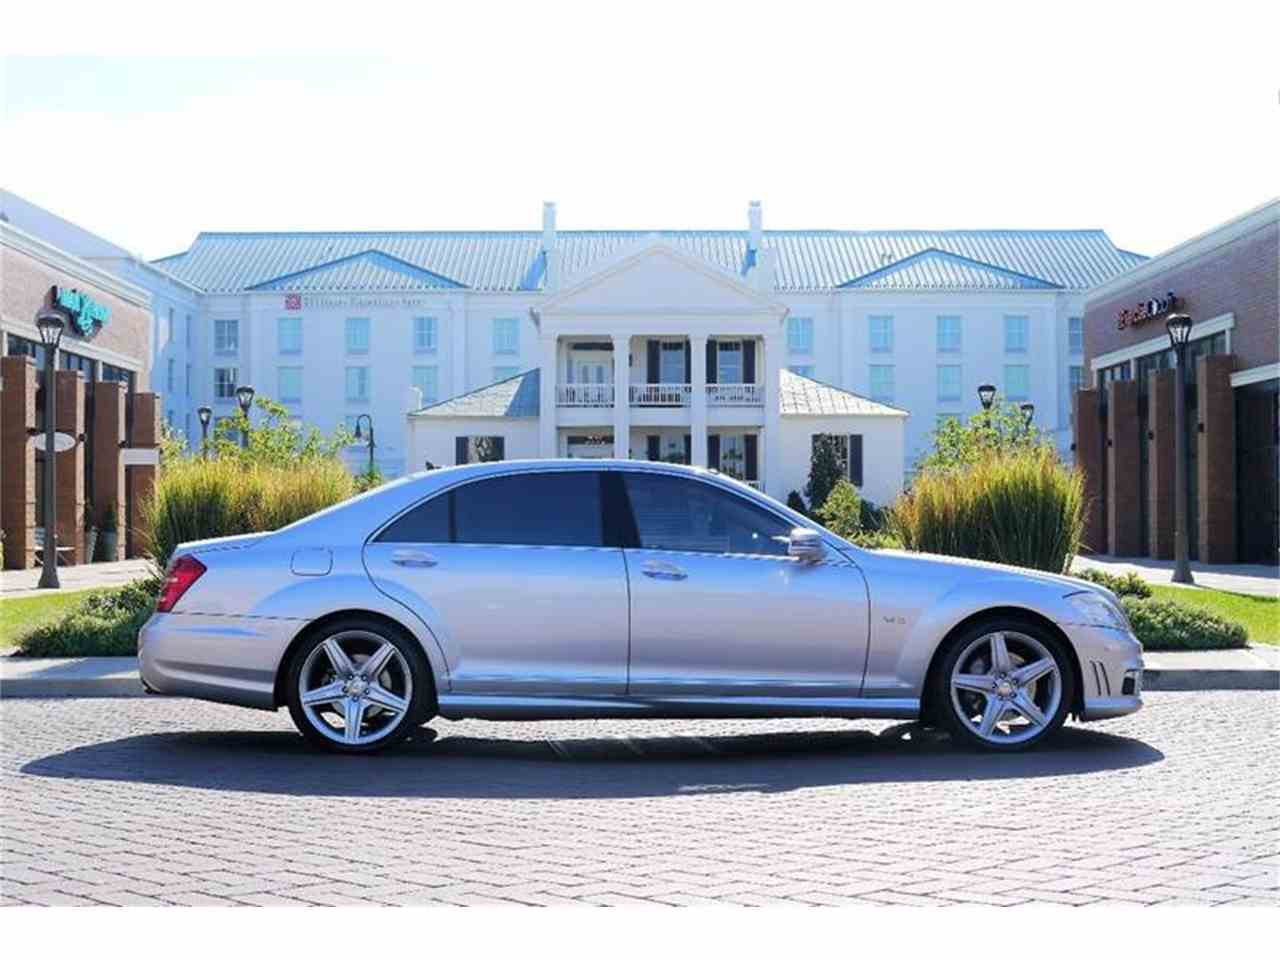 Large Picture of 2010 Mercedes-Benz S-Class located in Brentwood Tennessee Auction Vehicle - M2NU